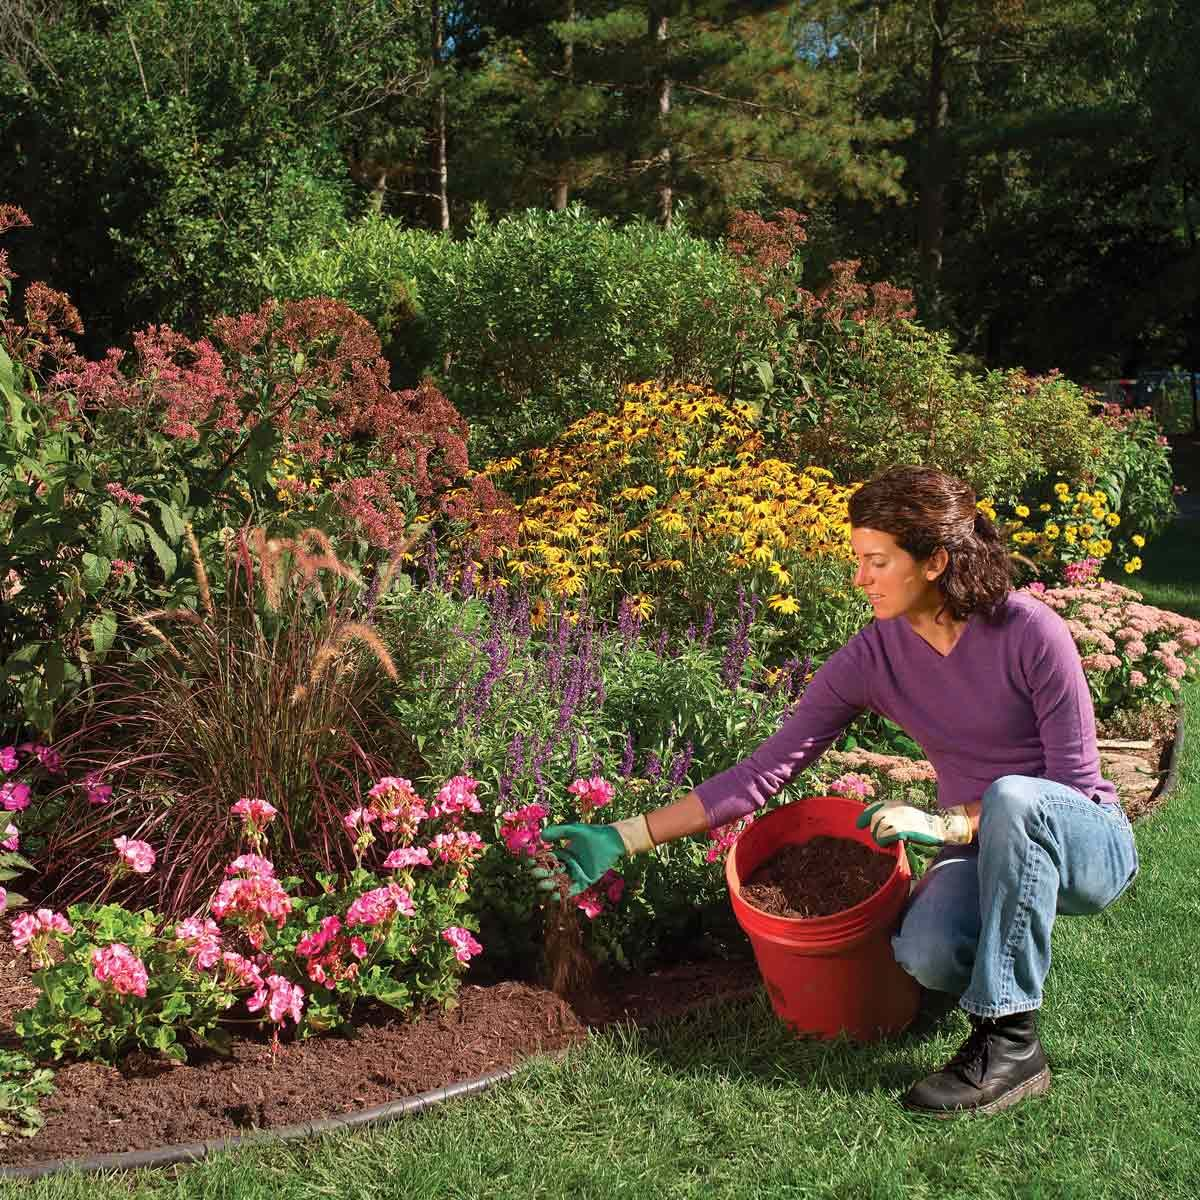 woman adding mulch to garden